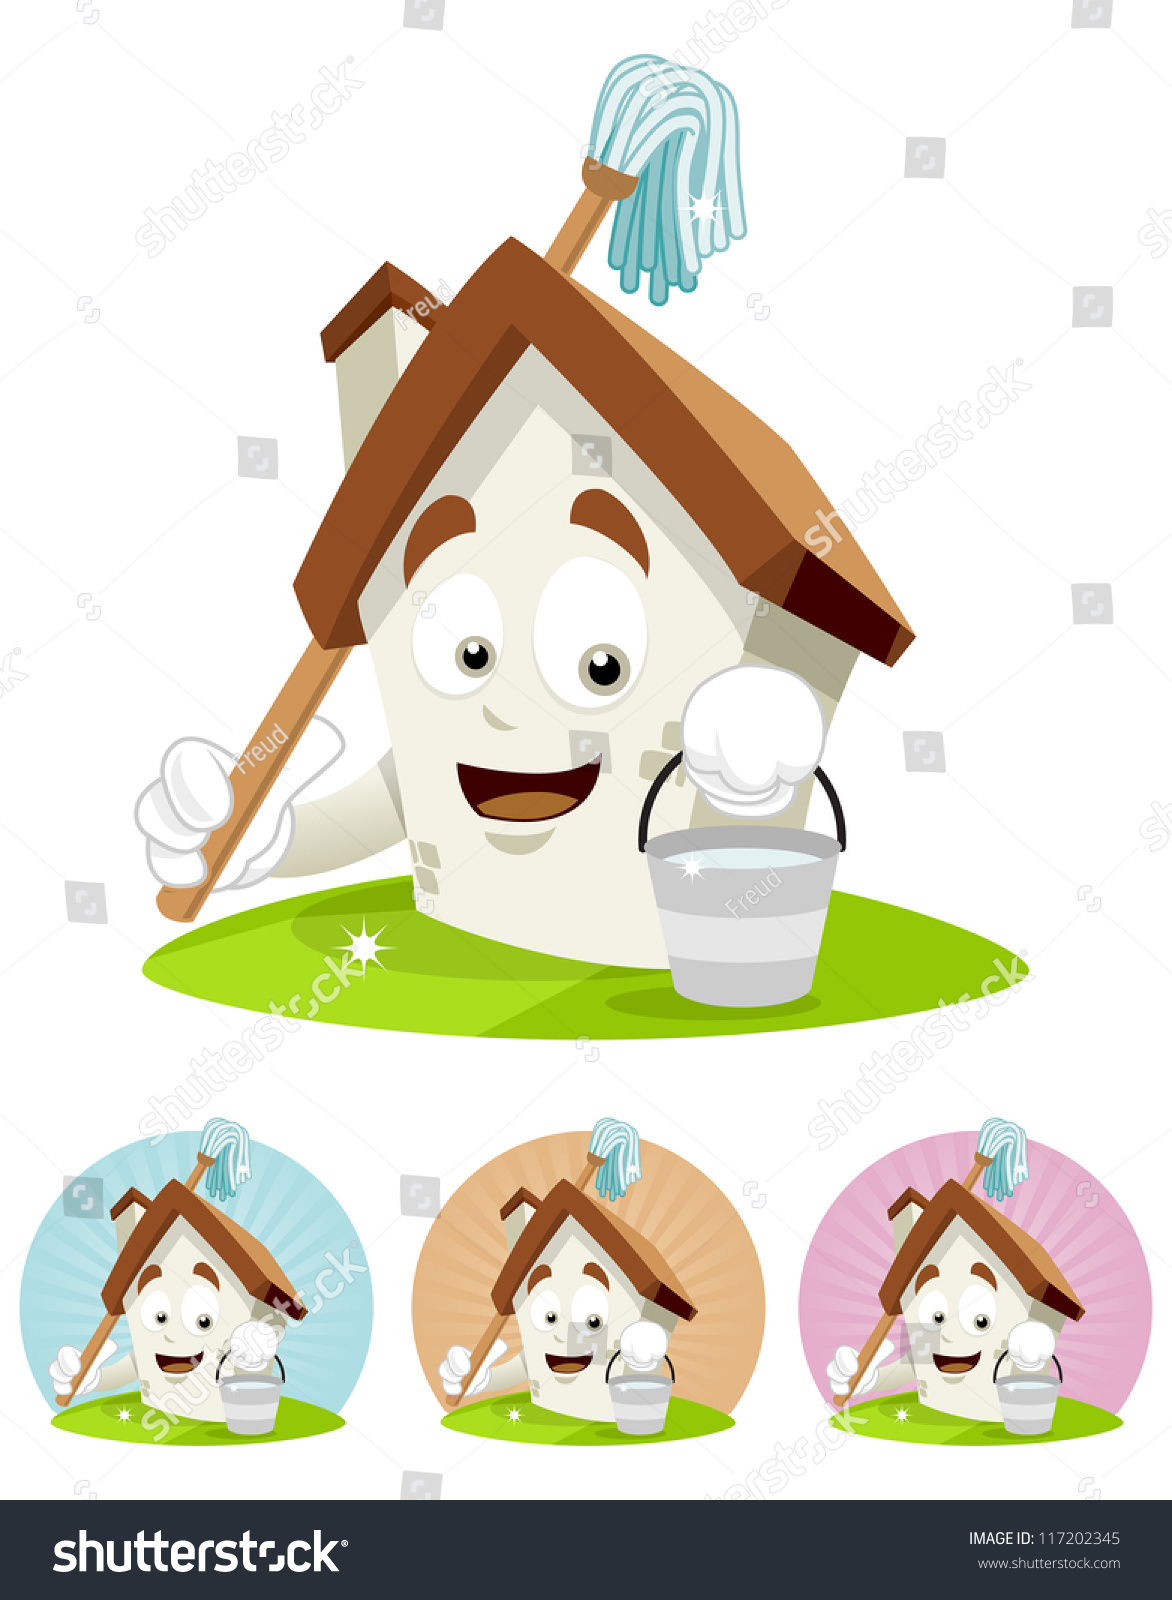 Cartoon Characters Houses : House cartoon character illustration cleaning stock